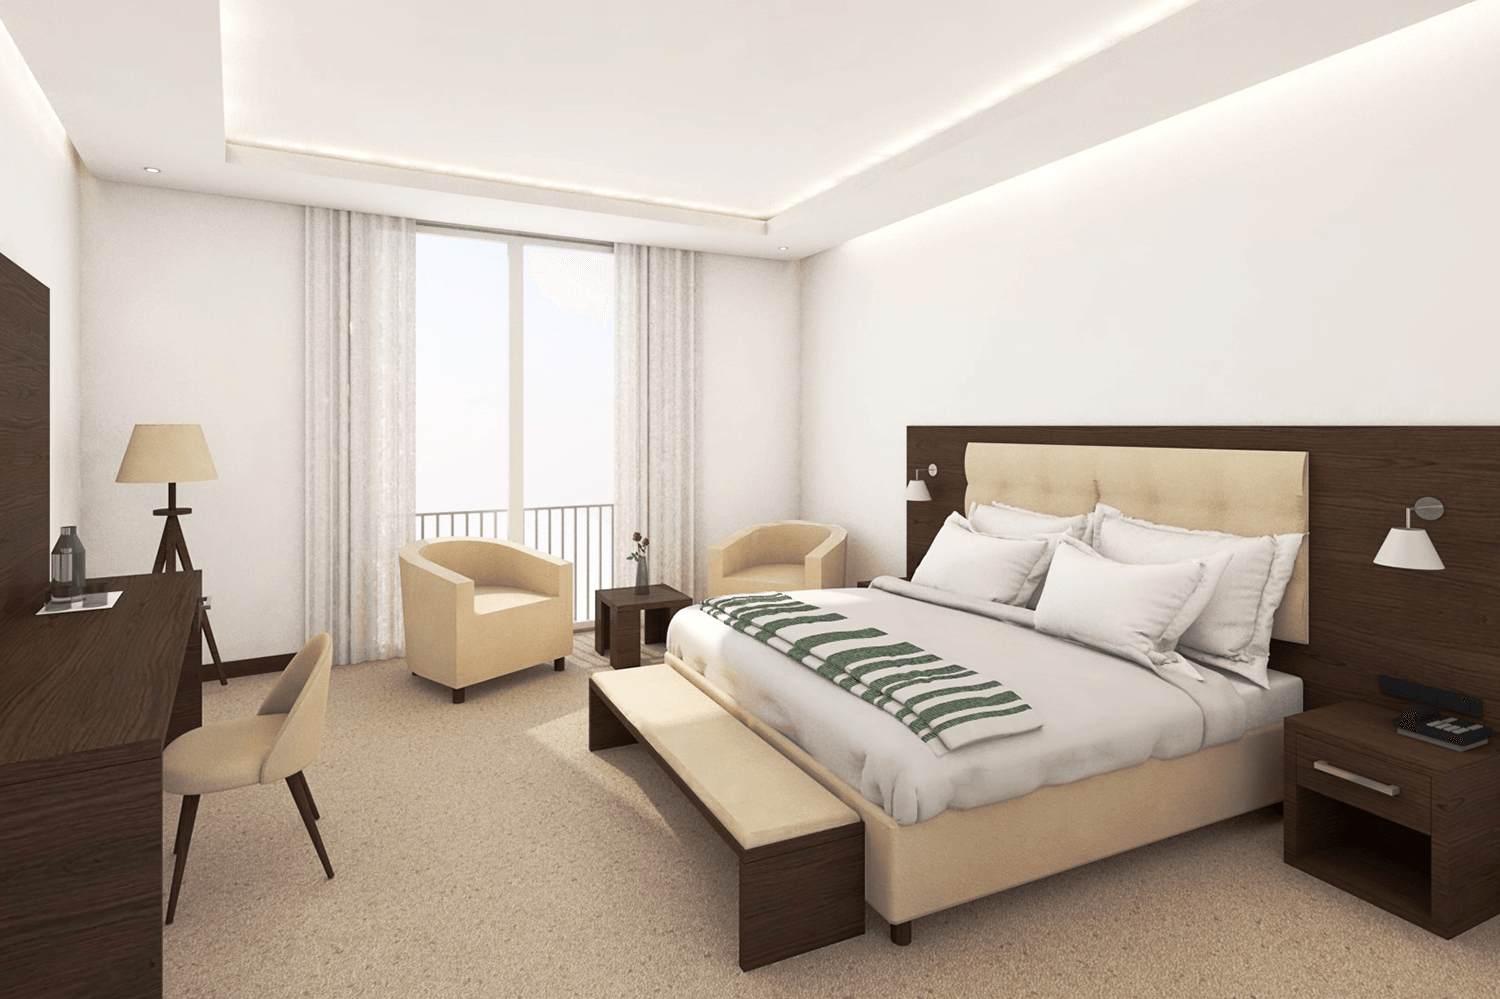 1.double bed room_hotel furniture_equipment project (1)